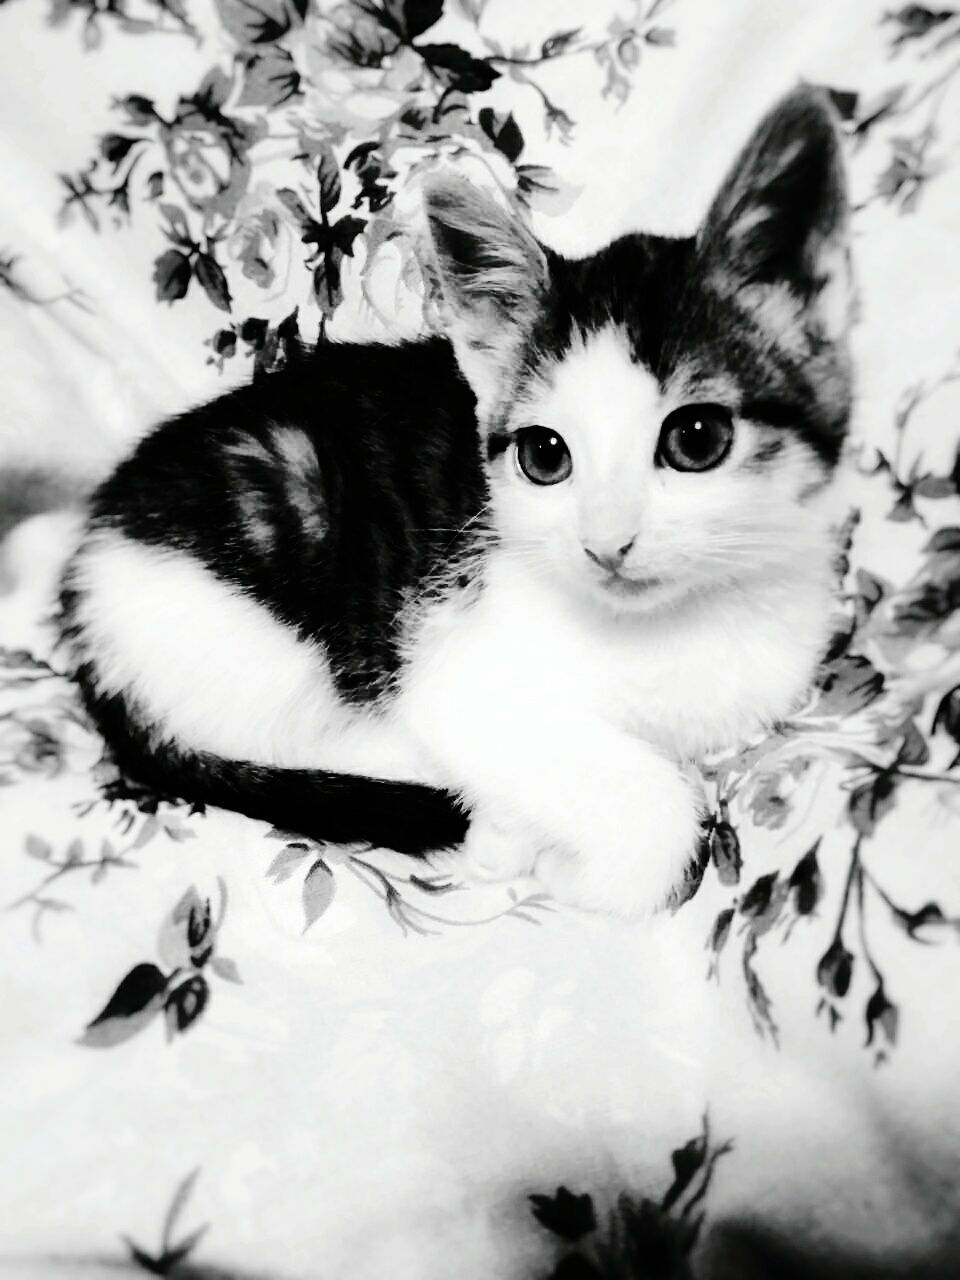 domestic cat, pets, feline, domestic animals, looking at camera, cat, animal themes, mammal, portrait, indoors, whisker, one animal, no people, bed, kitten, close-up, flower, day